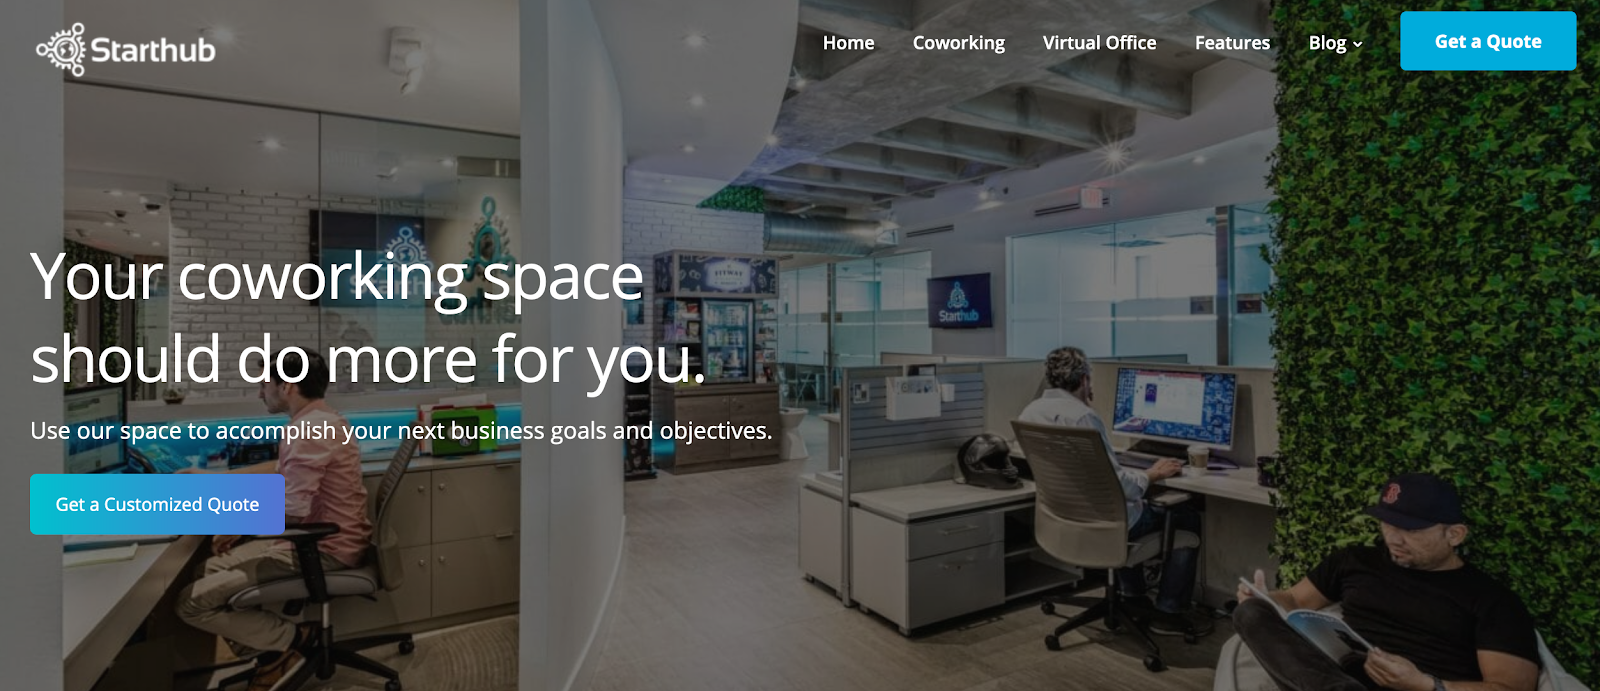 Starthub: Coworking Space for your Business Goals